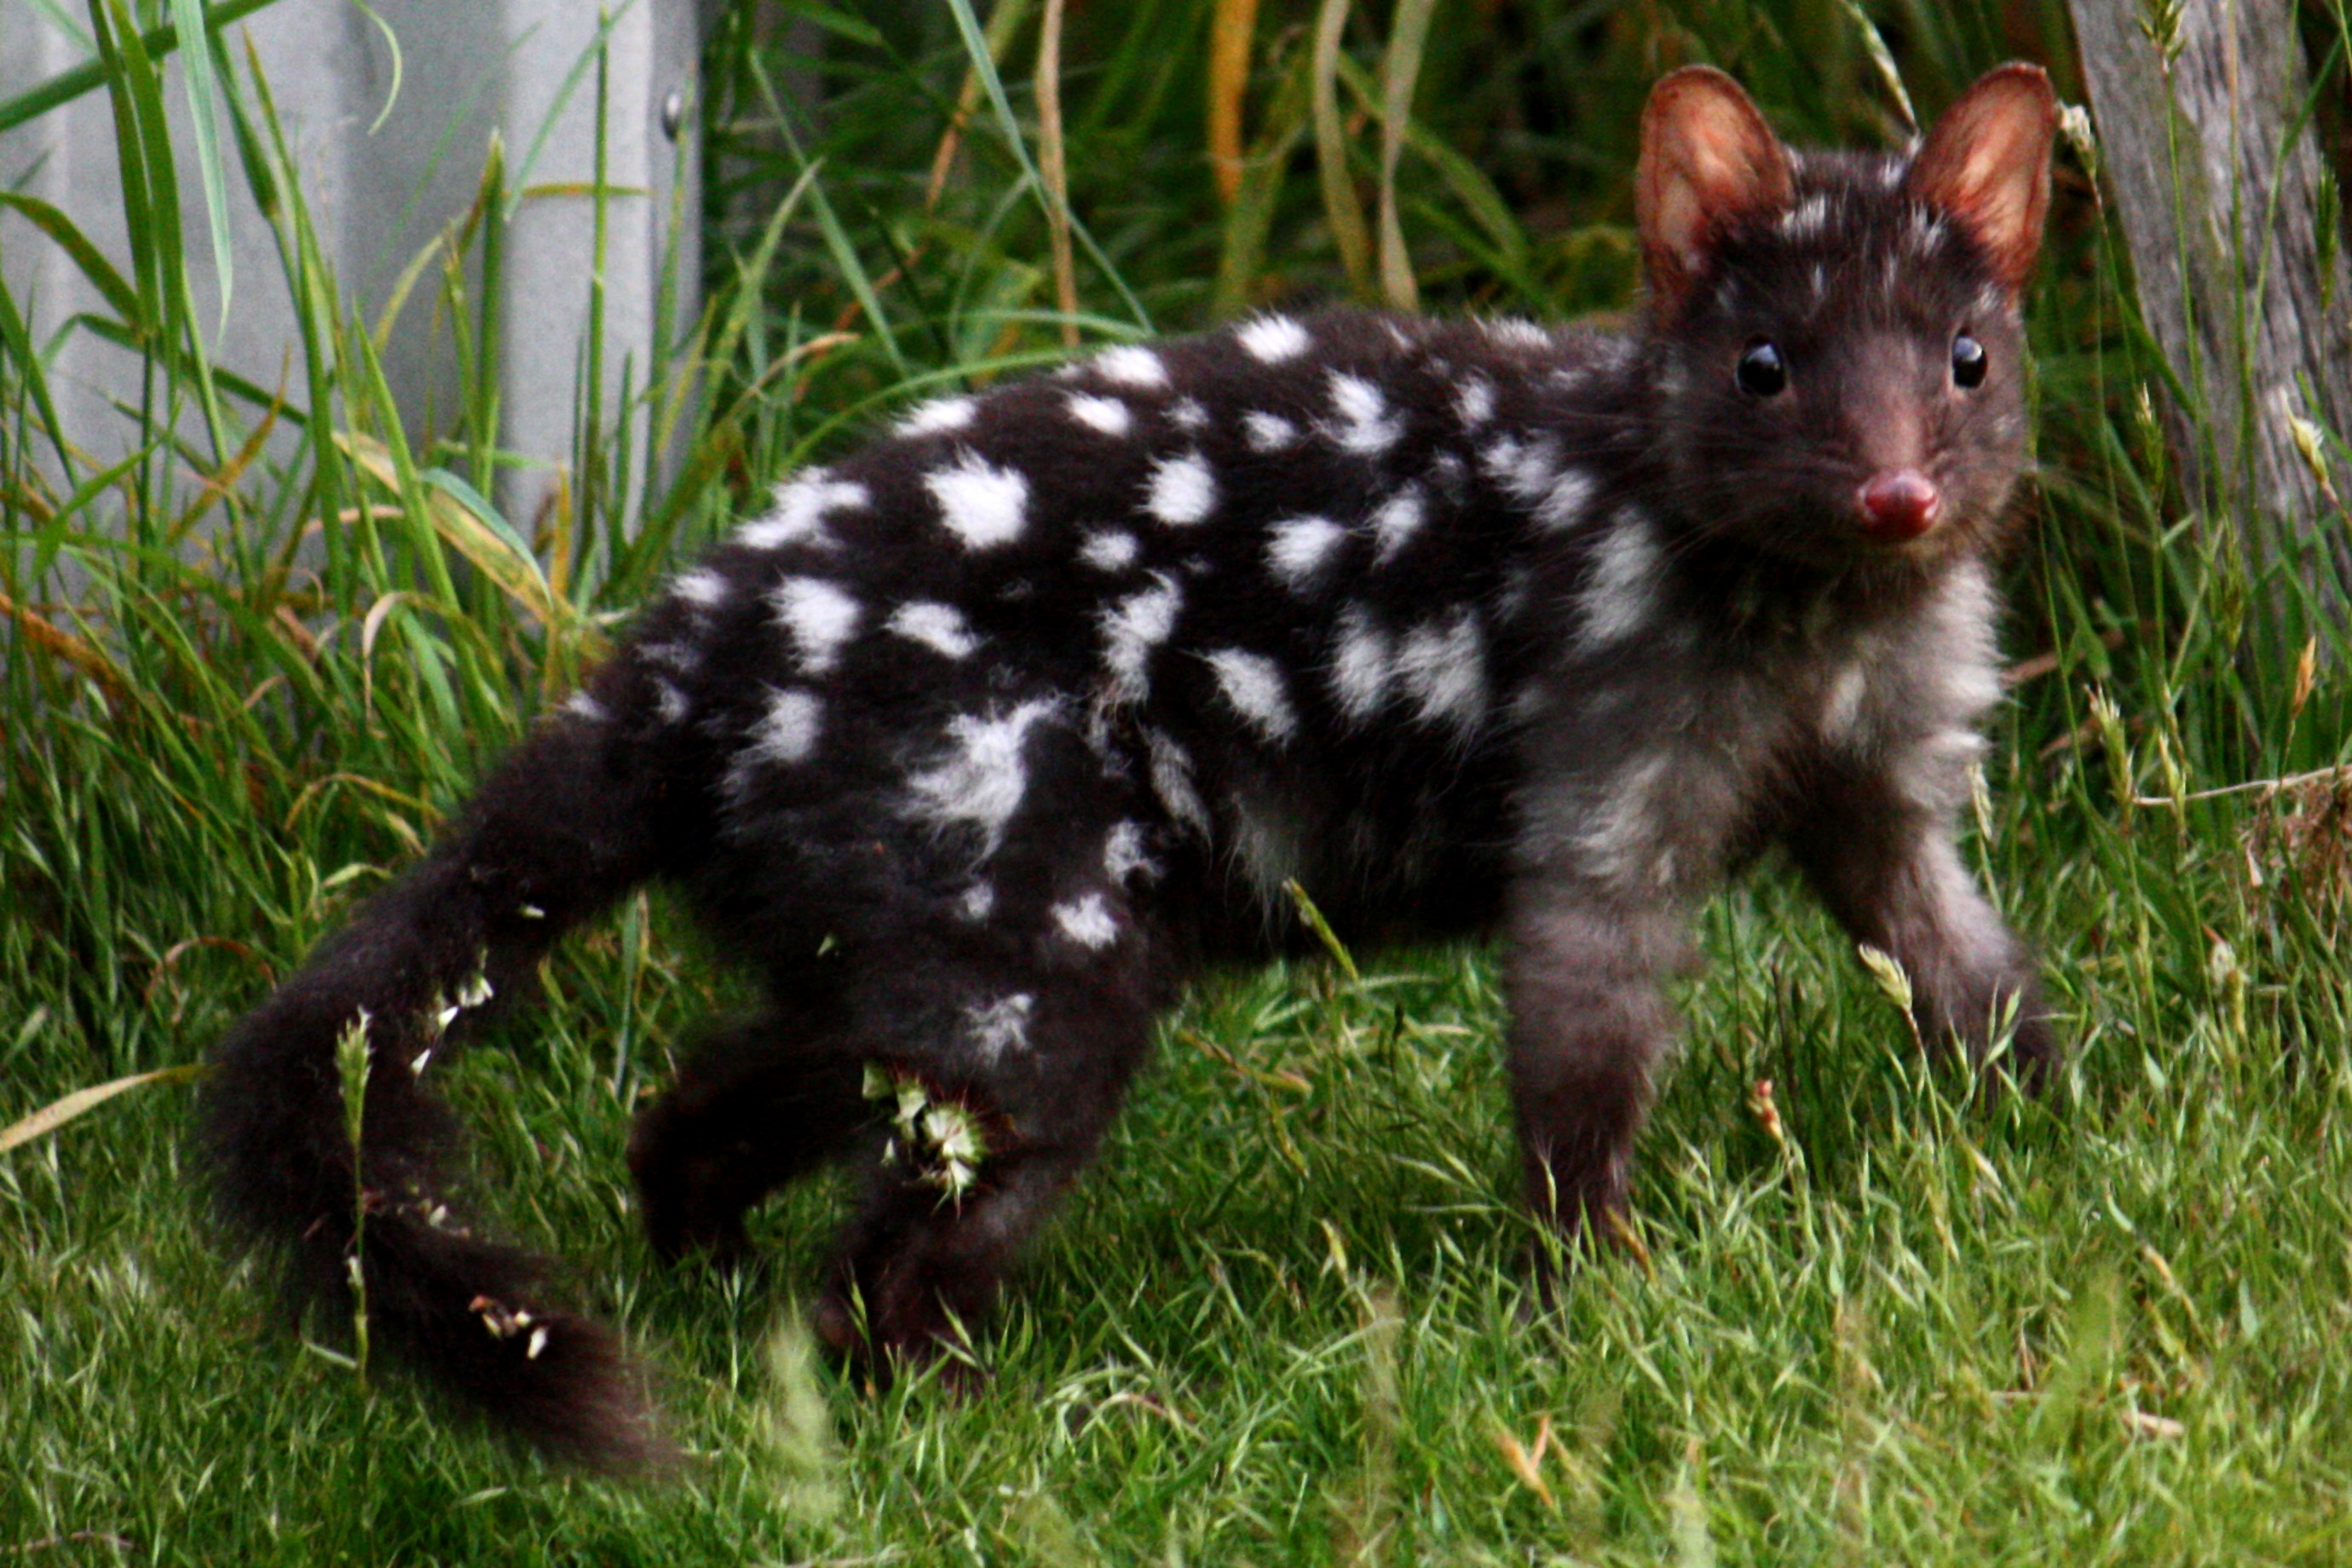 https://upload.wikimedia.org/wikipedia/commons/4/40/Eastern_Quoll_(Black).jpg